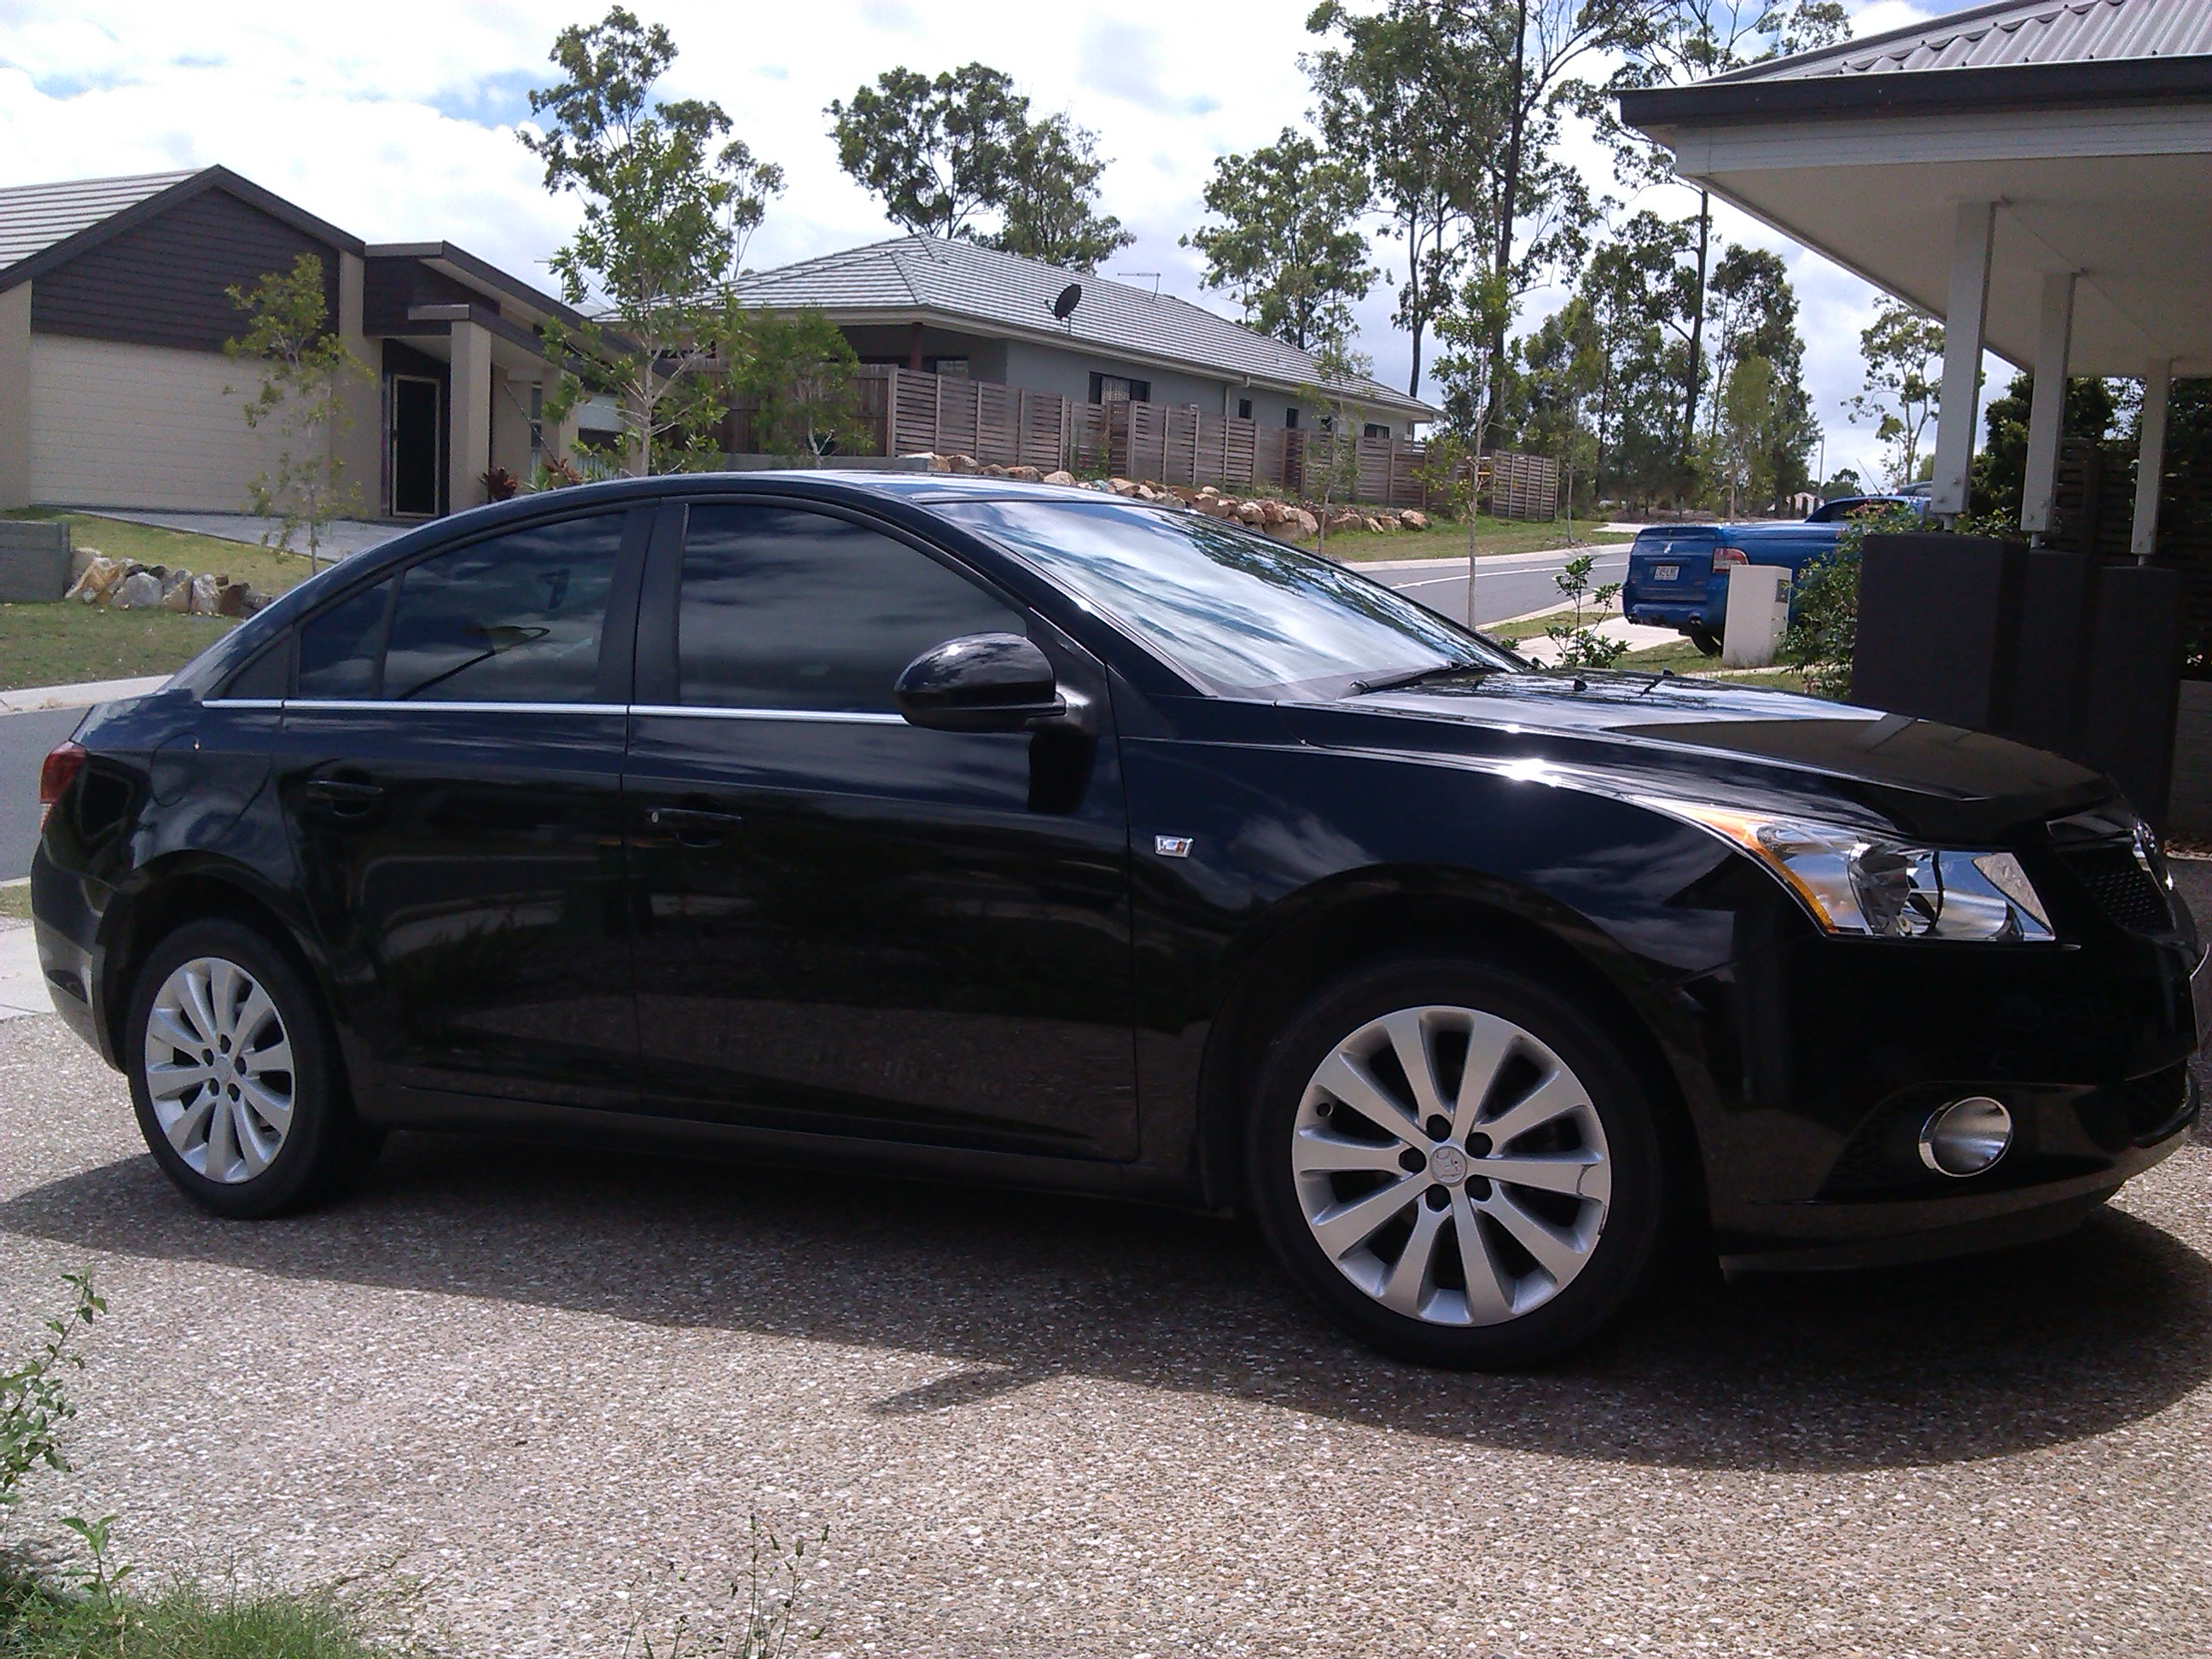 2011 Holden Cruze Cdx Jh Car Sales Qld Ipswich